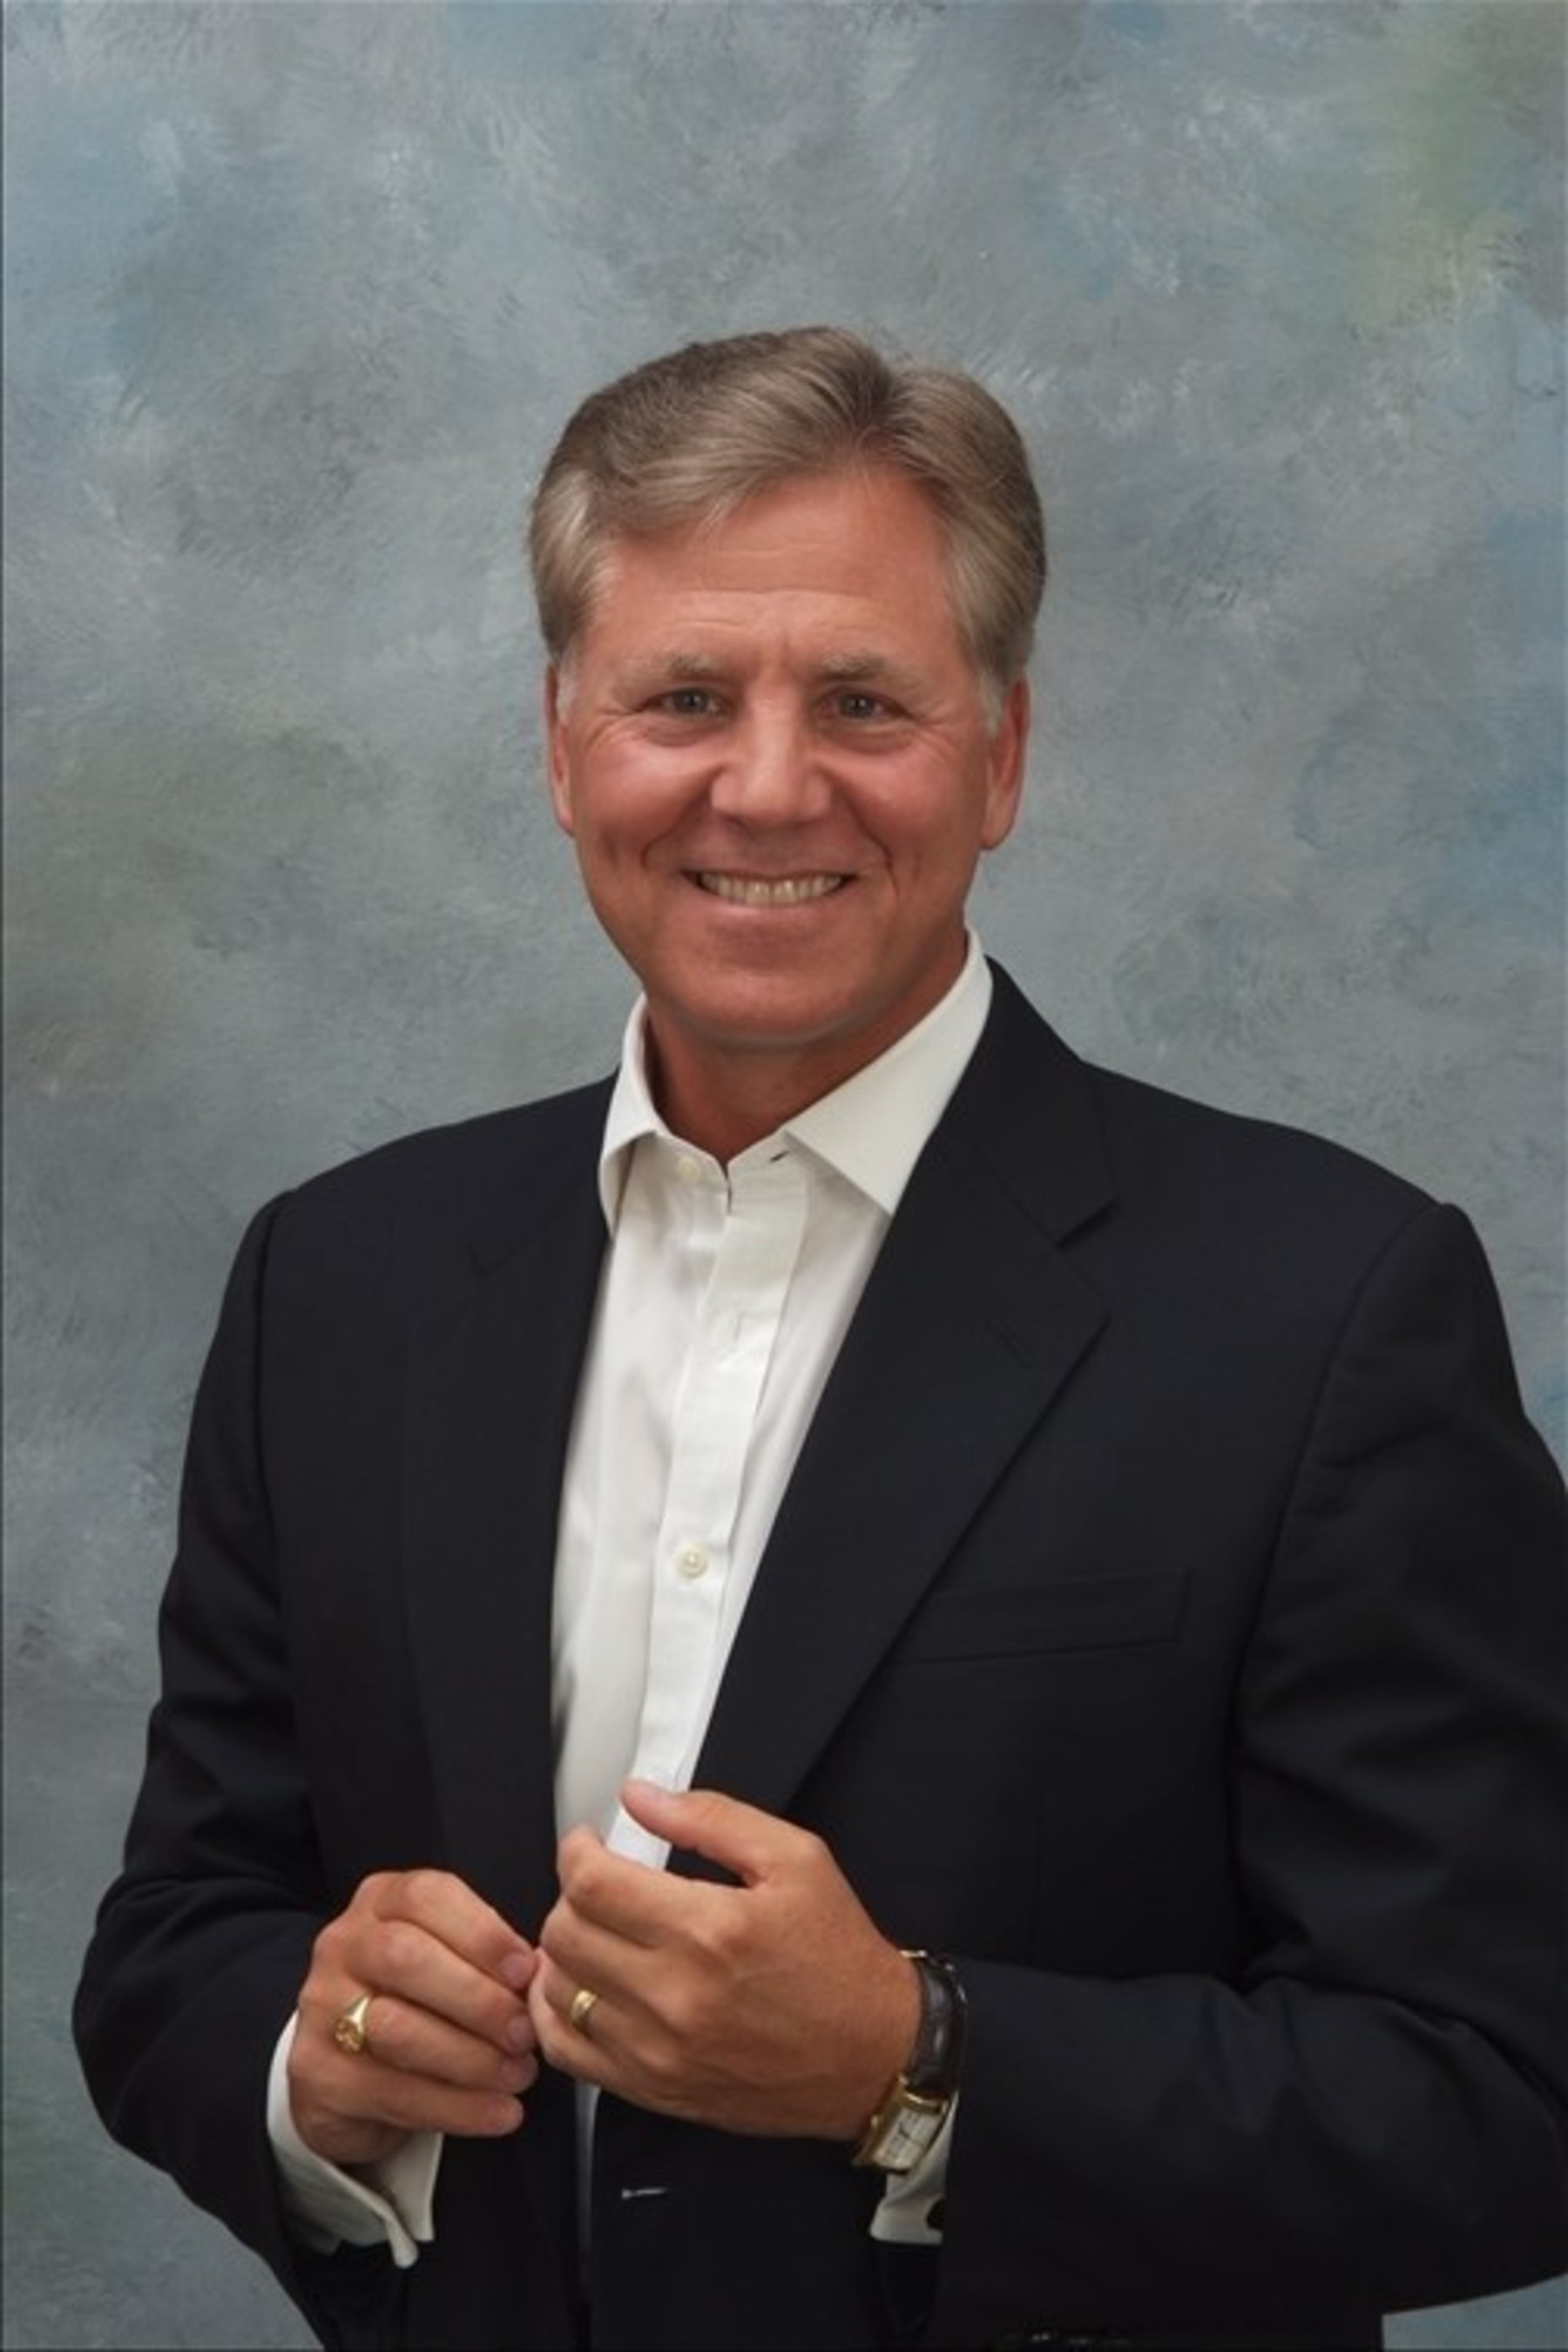 John A. Meyer, CEO and Co-Chairman of Arise receives IBA Stevie Executive of the Year Award